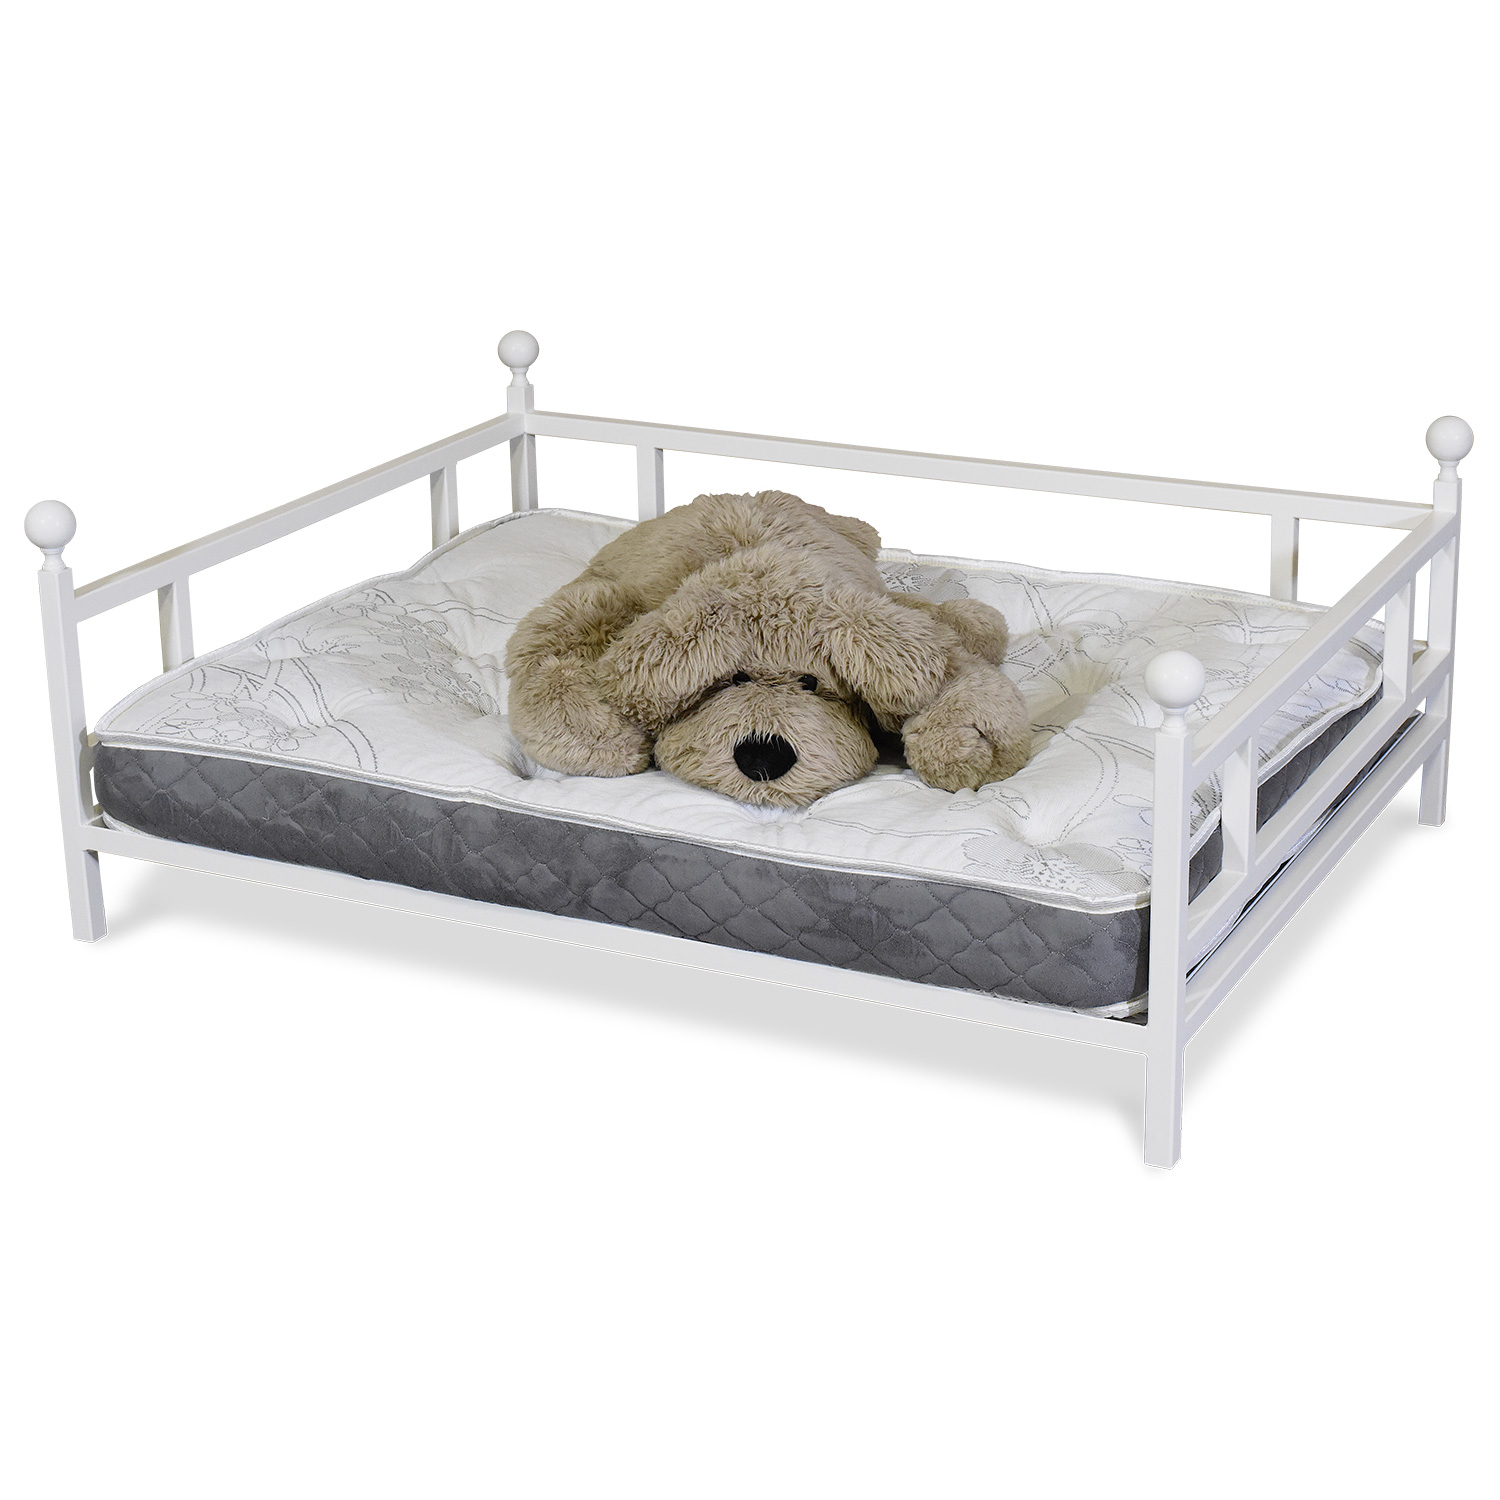 DB-335 Simplicity Dog Bed